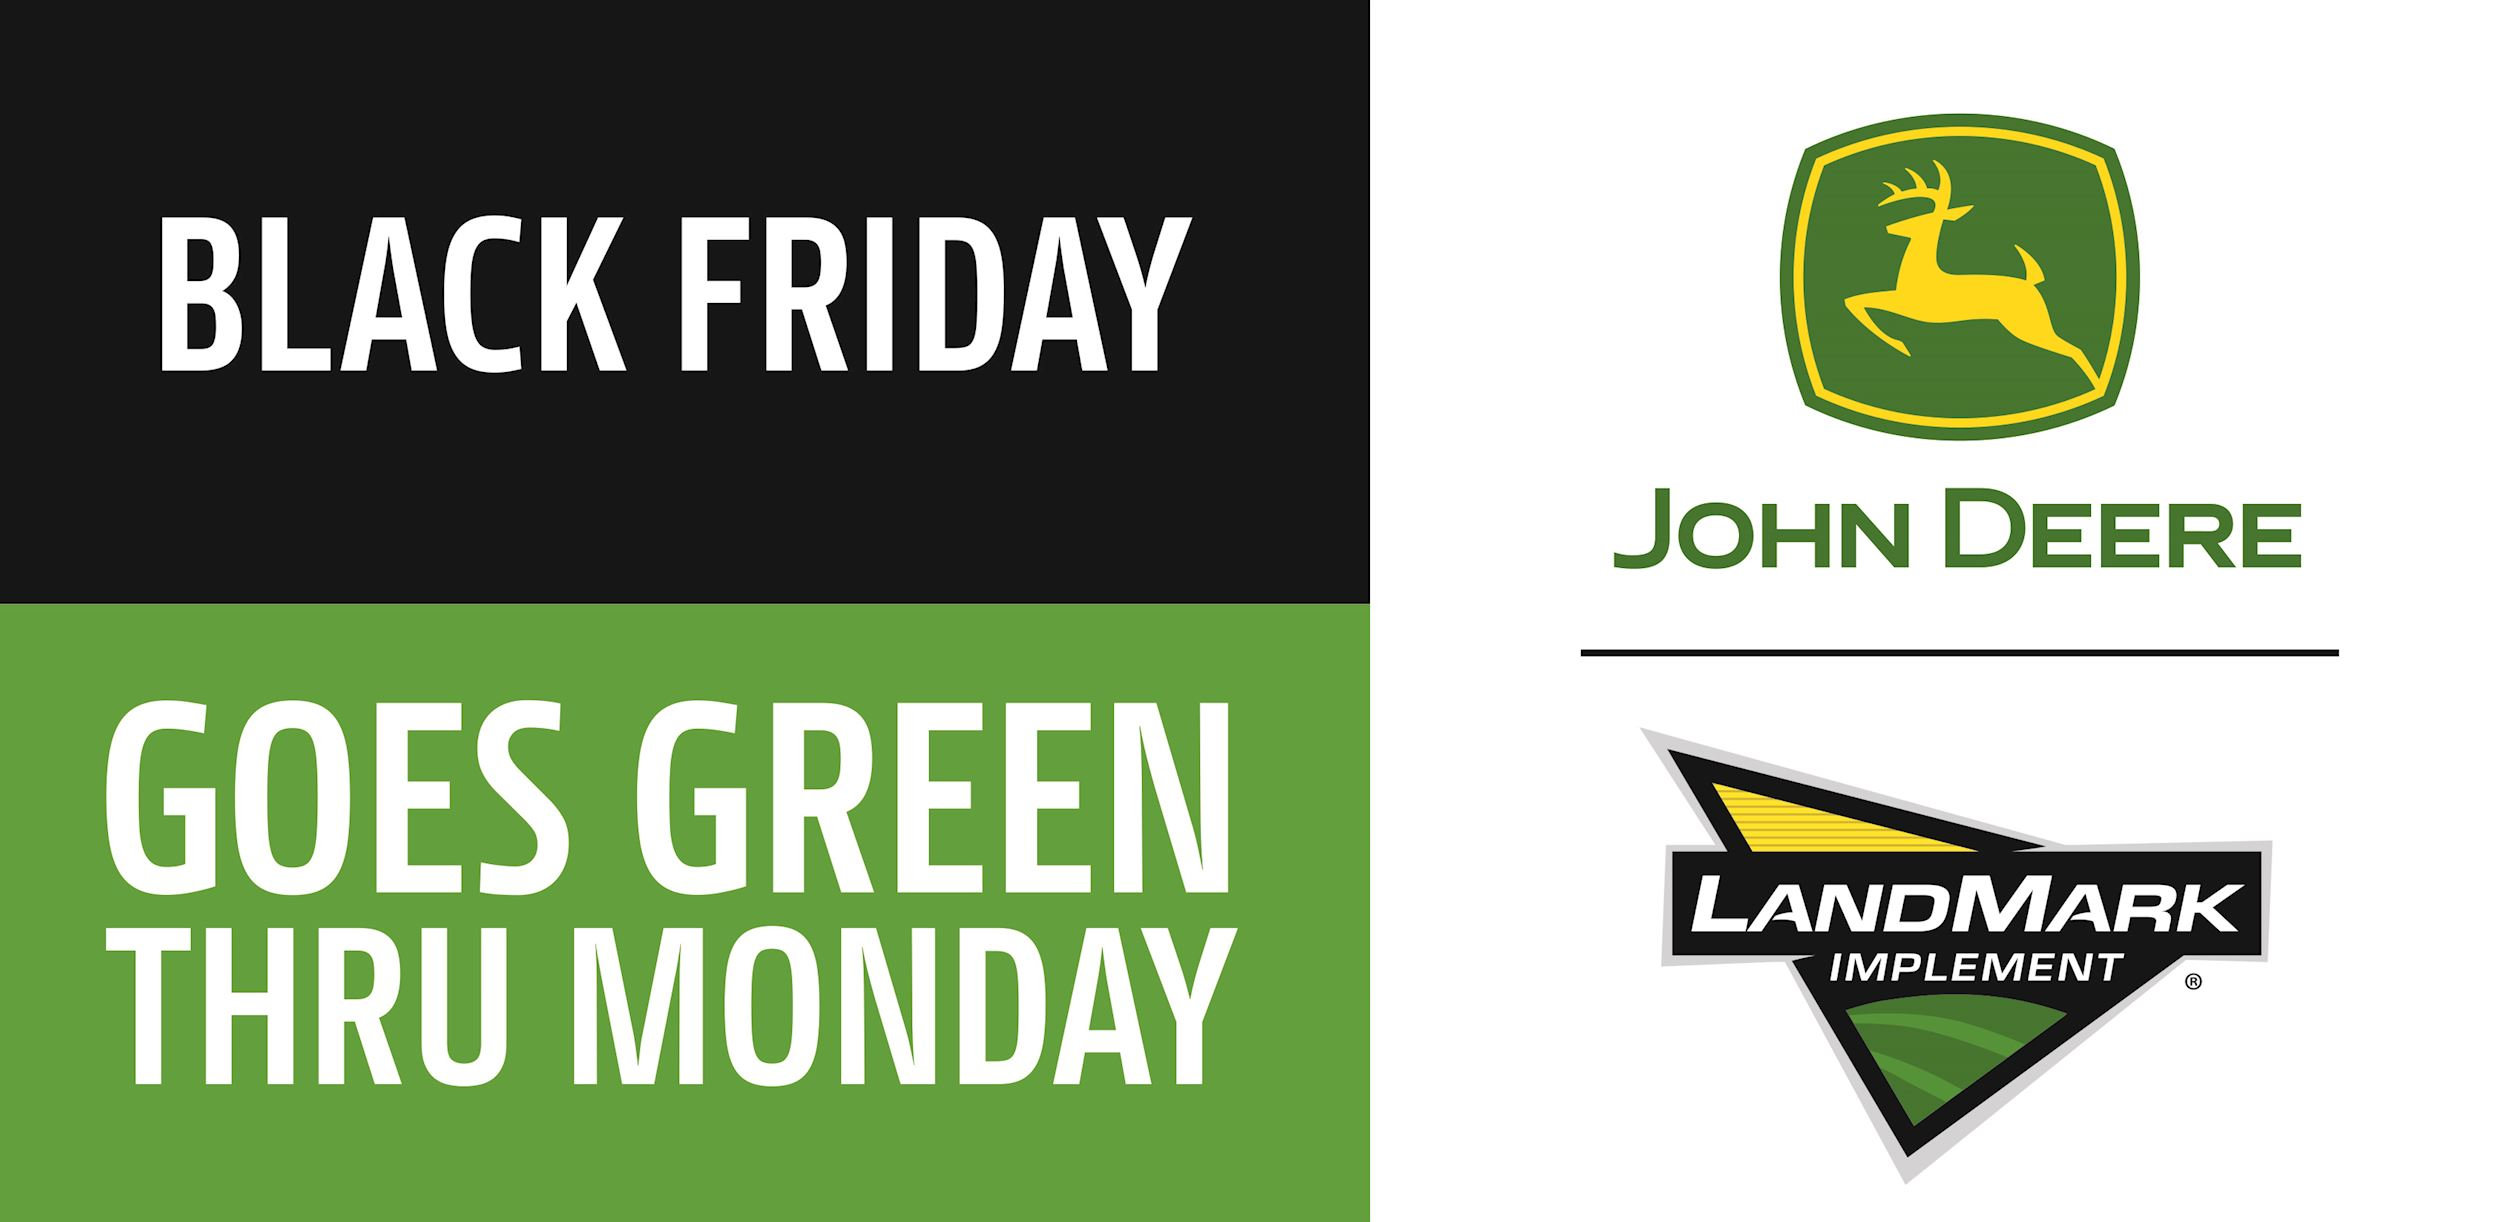 Black Friday goes green through Monday